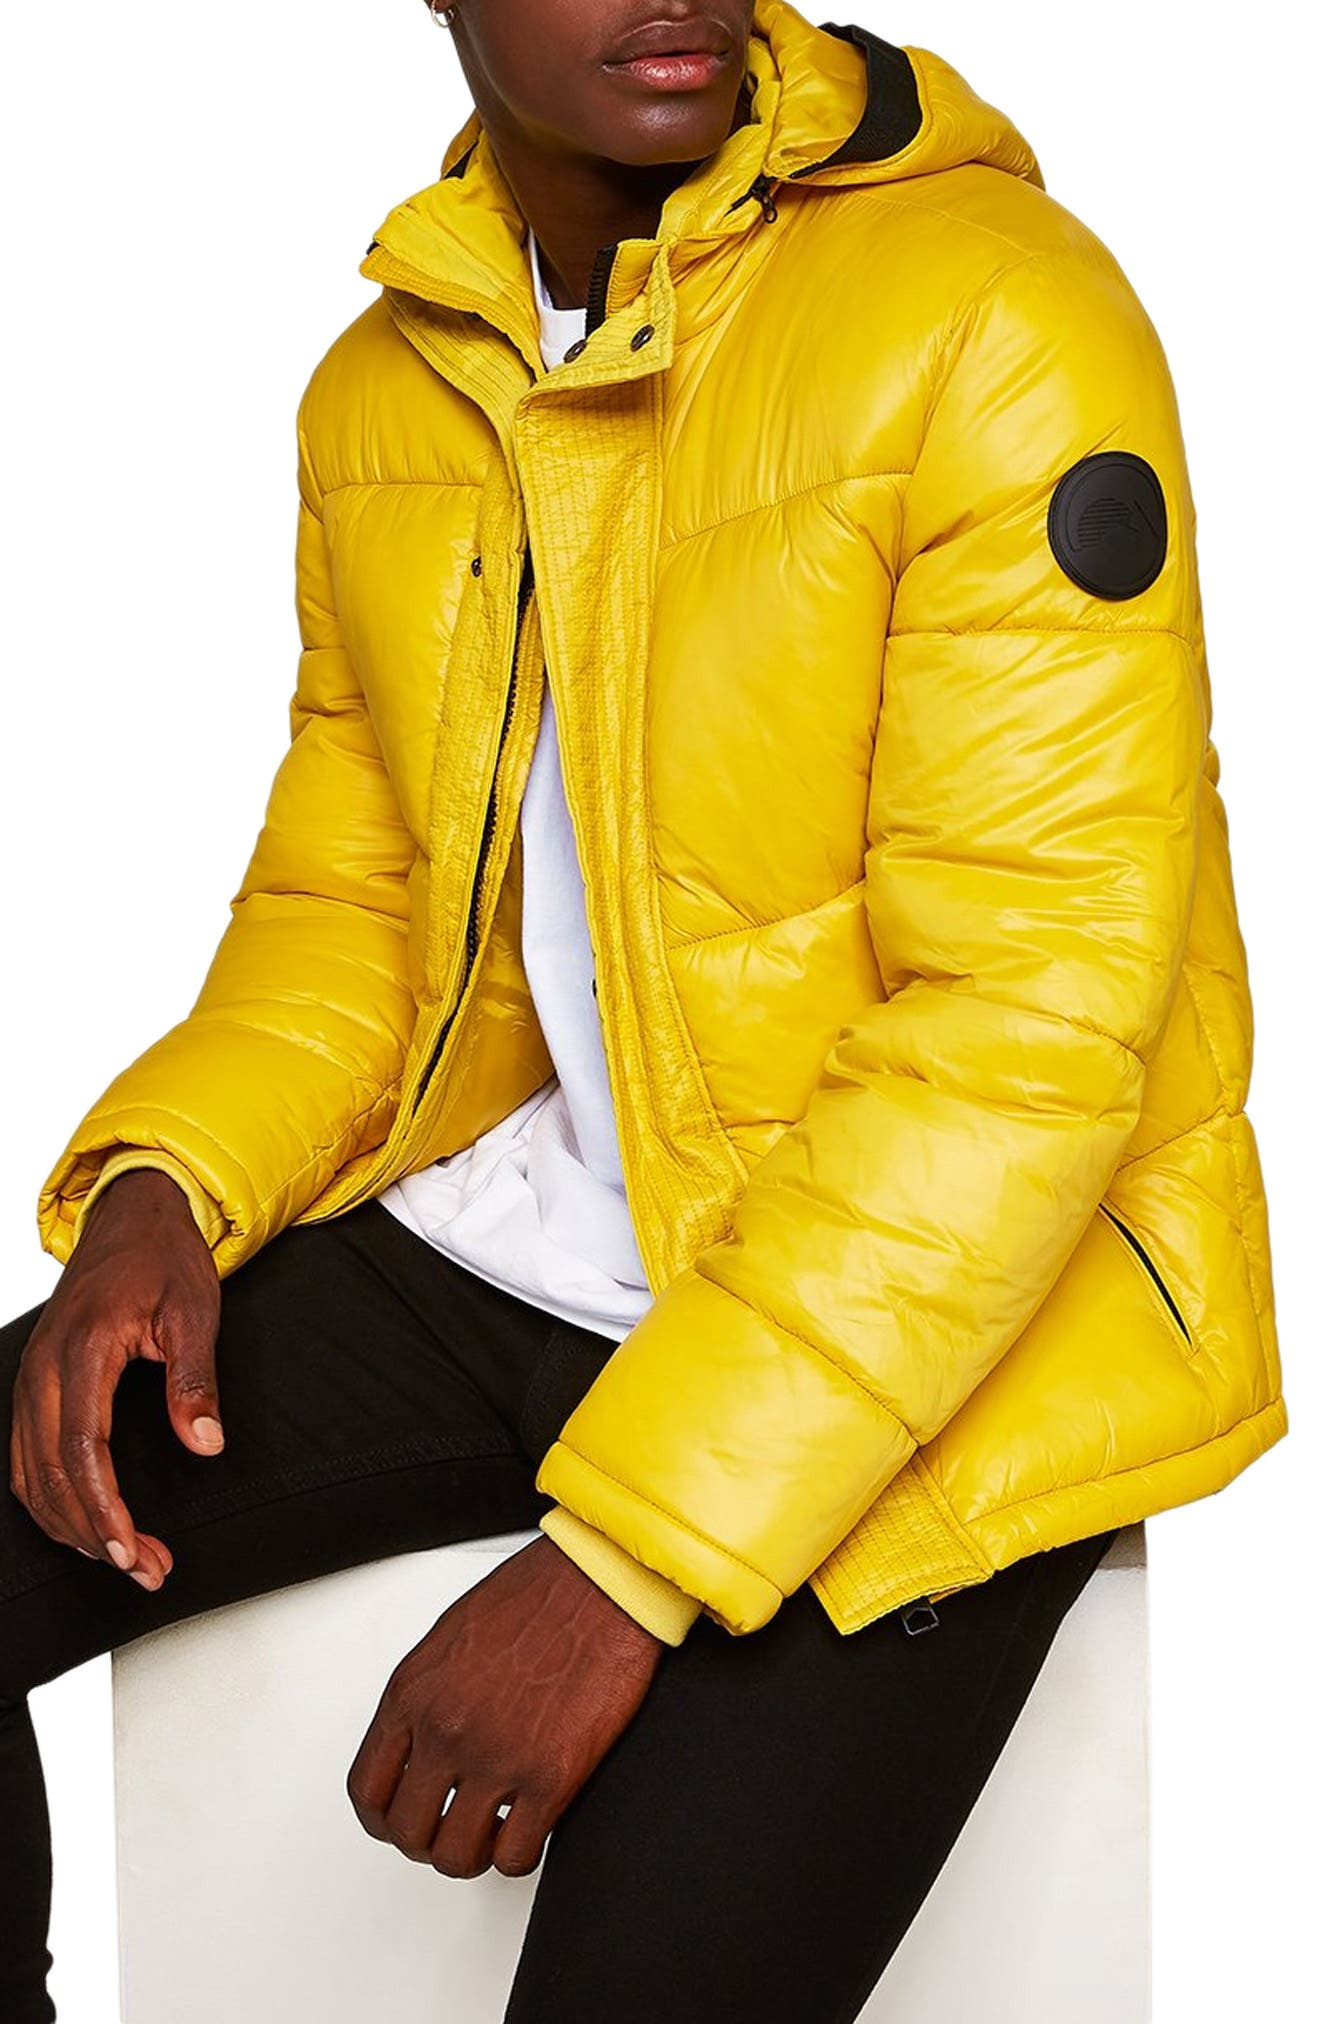 Capi Classic Fit Puffer Jacket,                             Alternate thumbnail 3, color,                             700